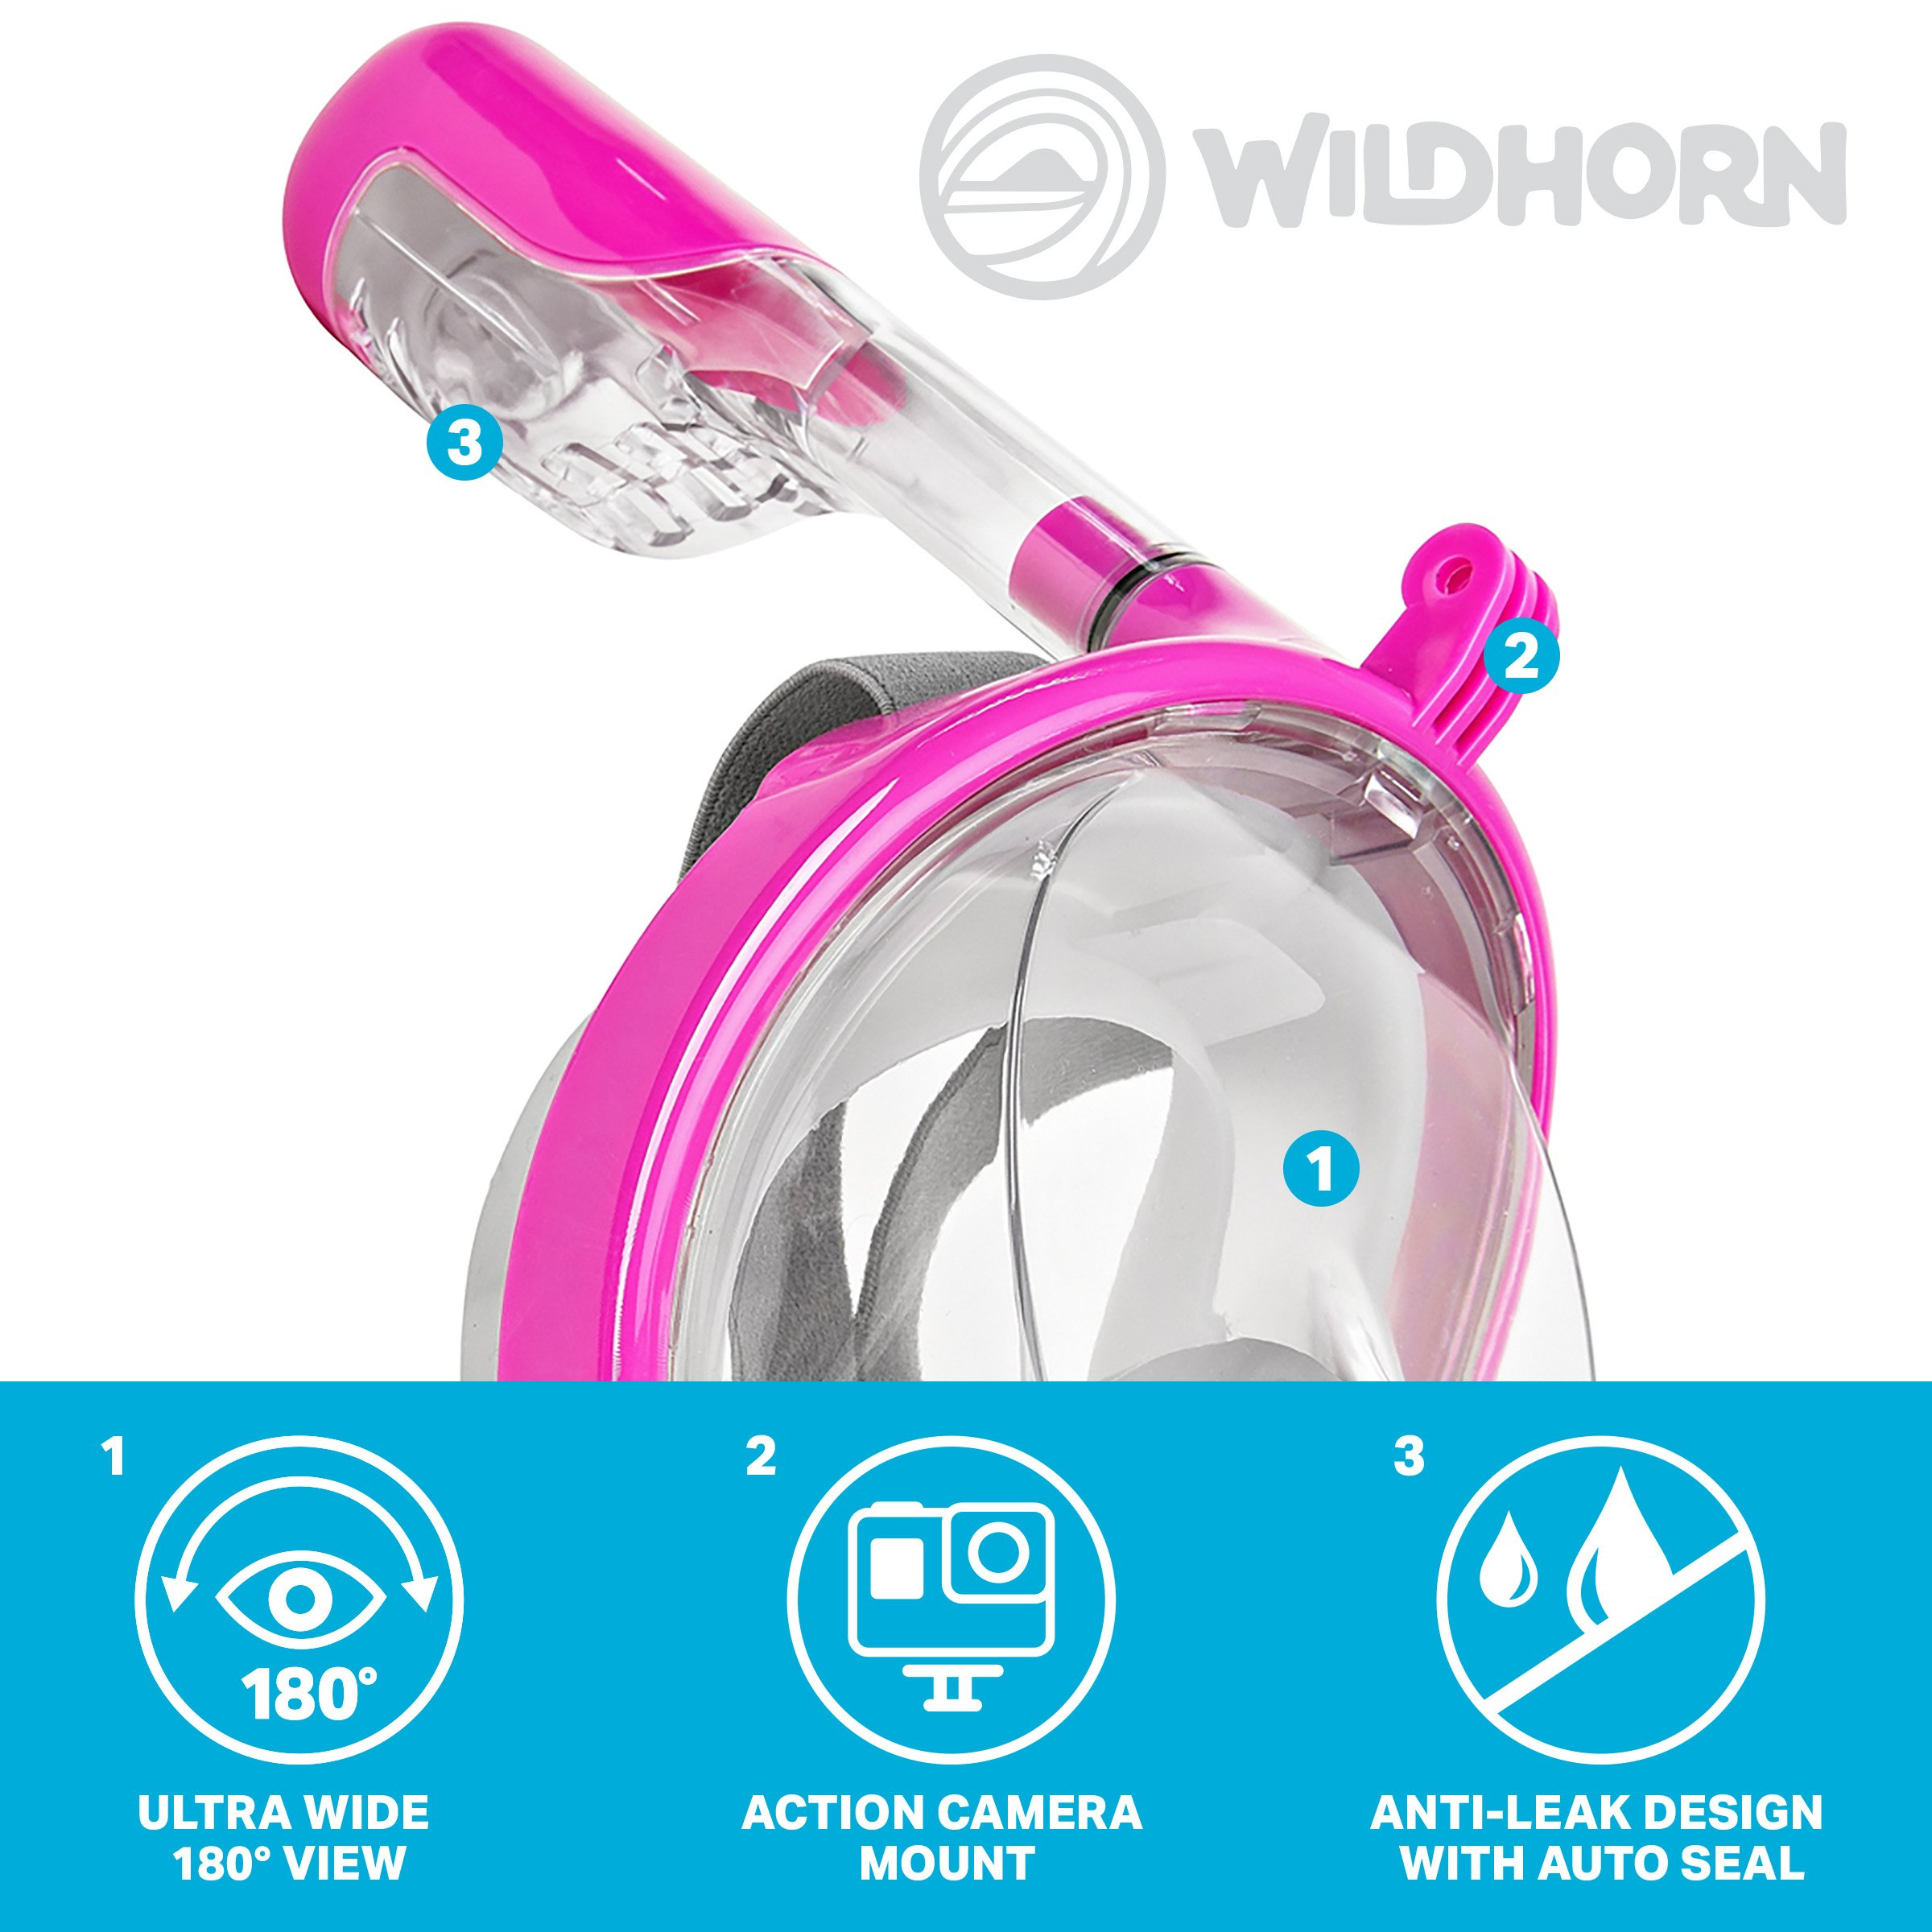 Seaview 180° GoPro Compatible Snorkel Mask- Panoramic Full Face Design. See More With Larger Viewing Area Than Traditional Masks. Prevents Gag Reflex with Tubeless Design (Lotus, S/M) by WildHorn Outfitters (Image #4)